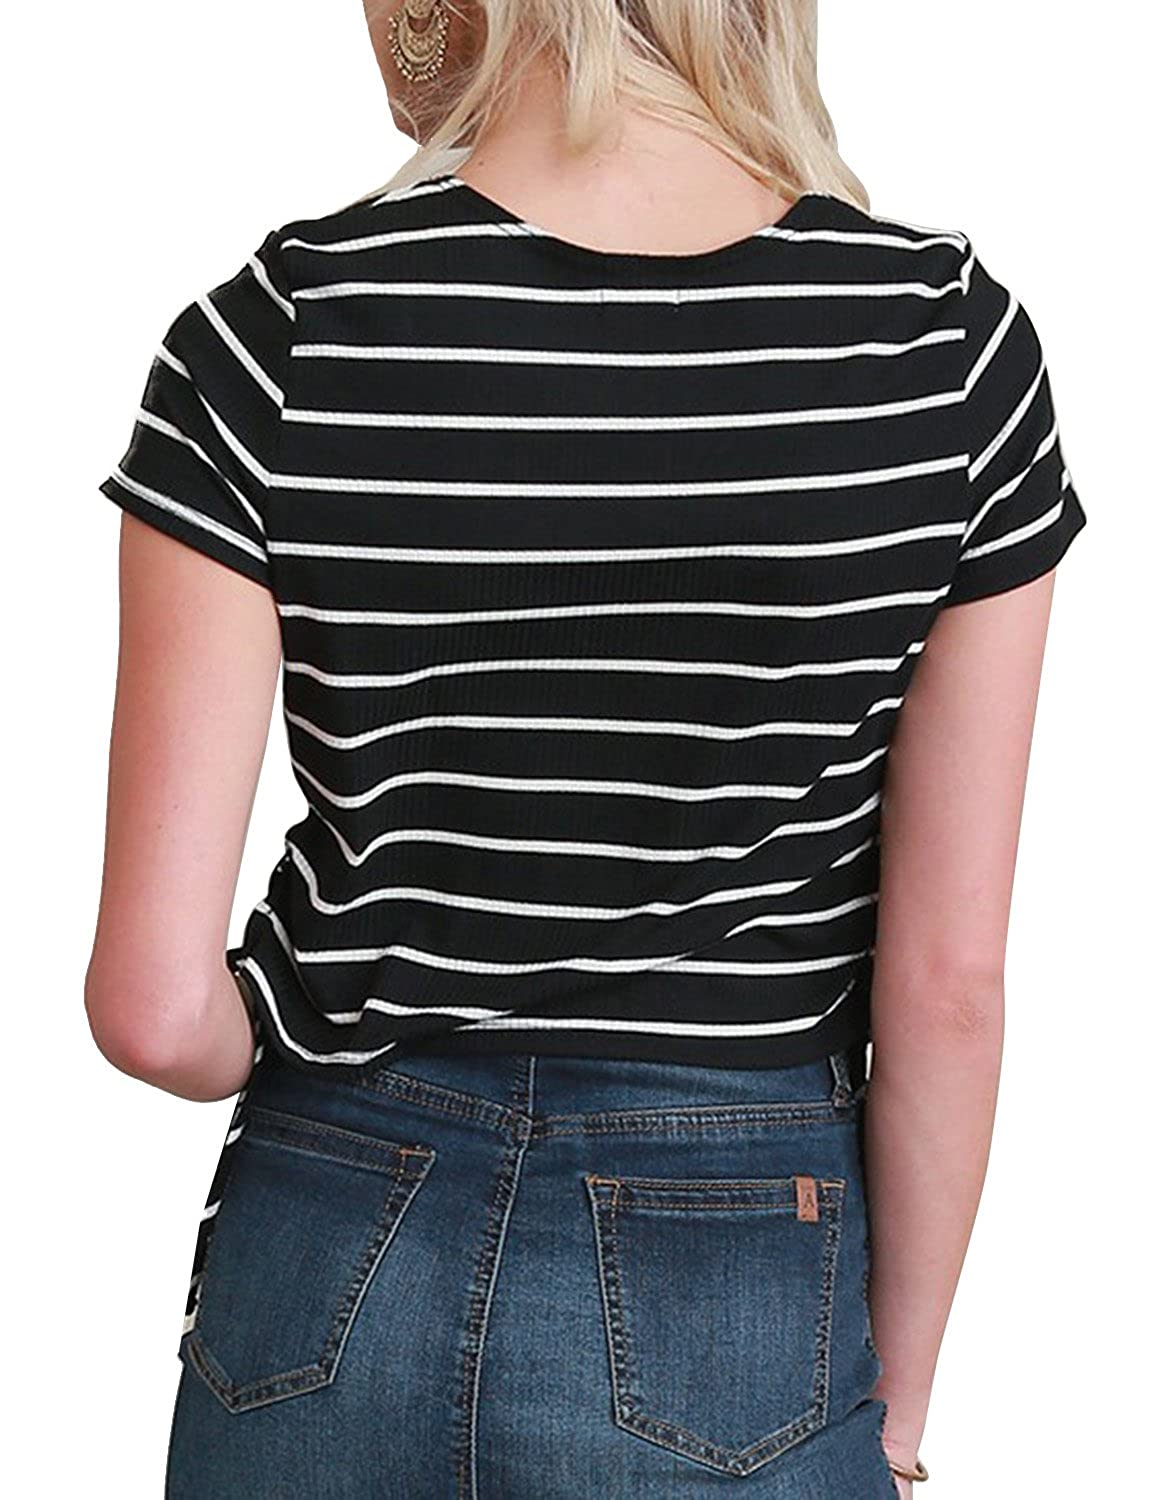 64bca332b27 hodoyi Women's Preppy Style O-Neck Striped Short Sleeves Crop Tops Tees at Amazon  Women's Clothing store: